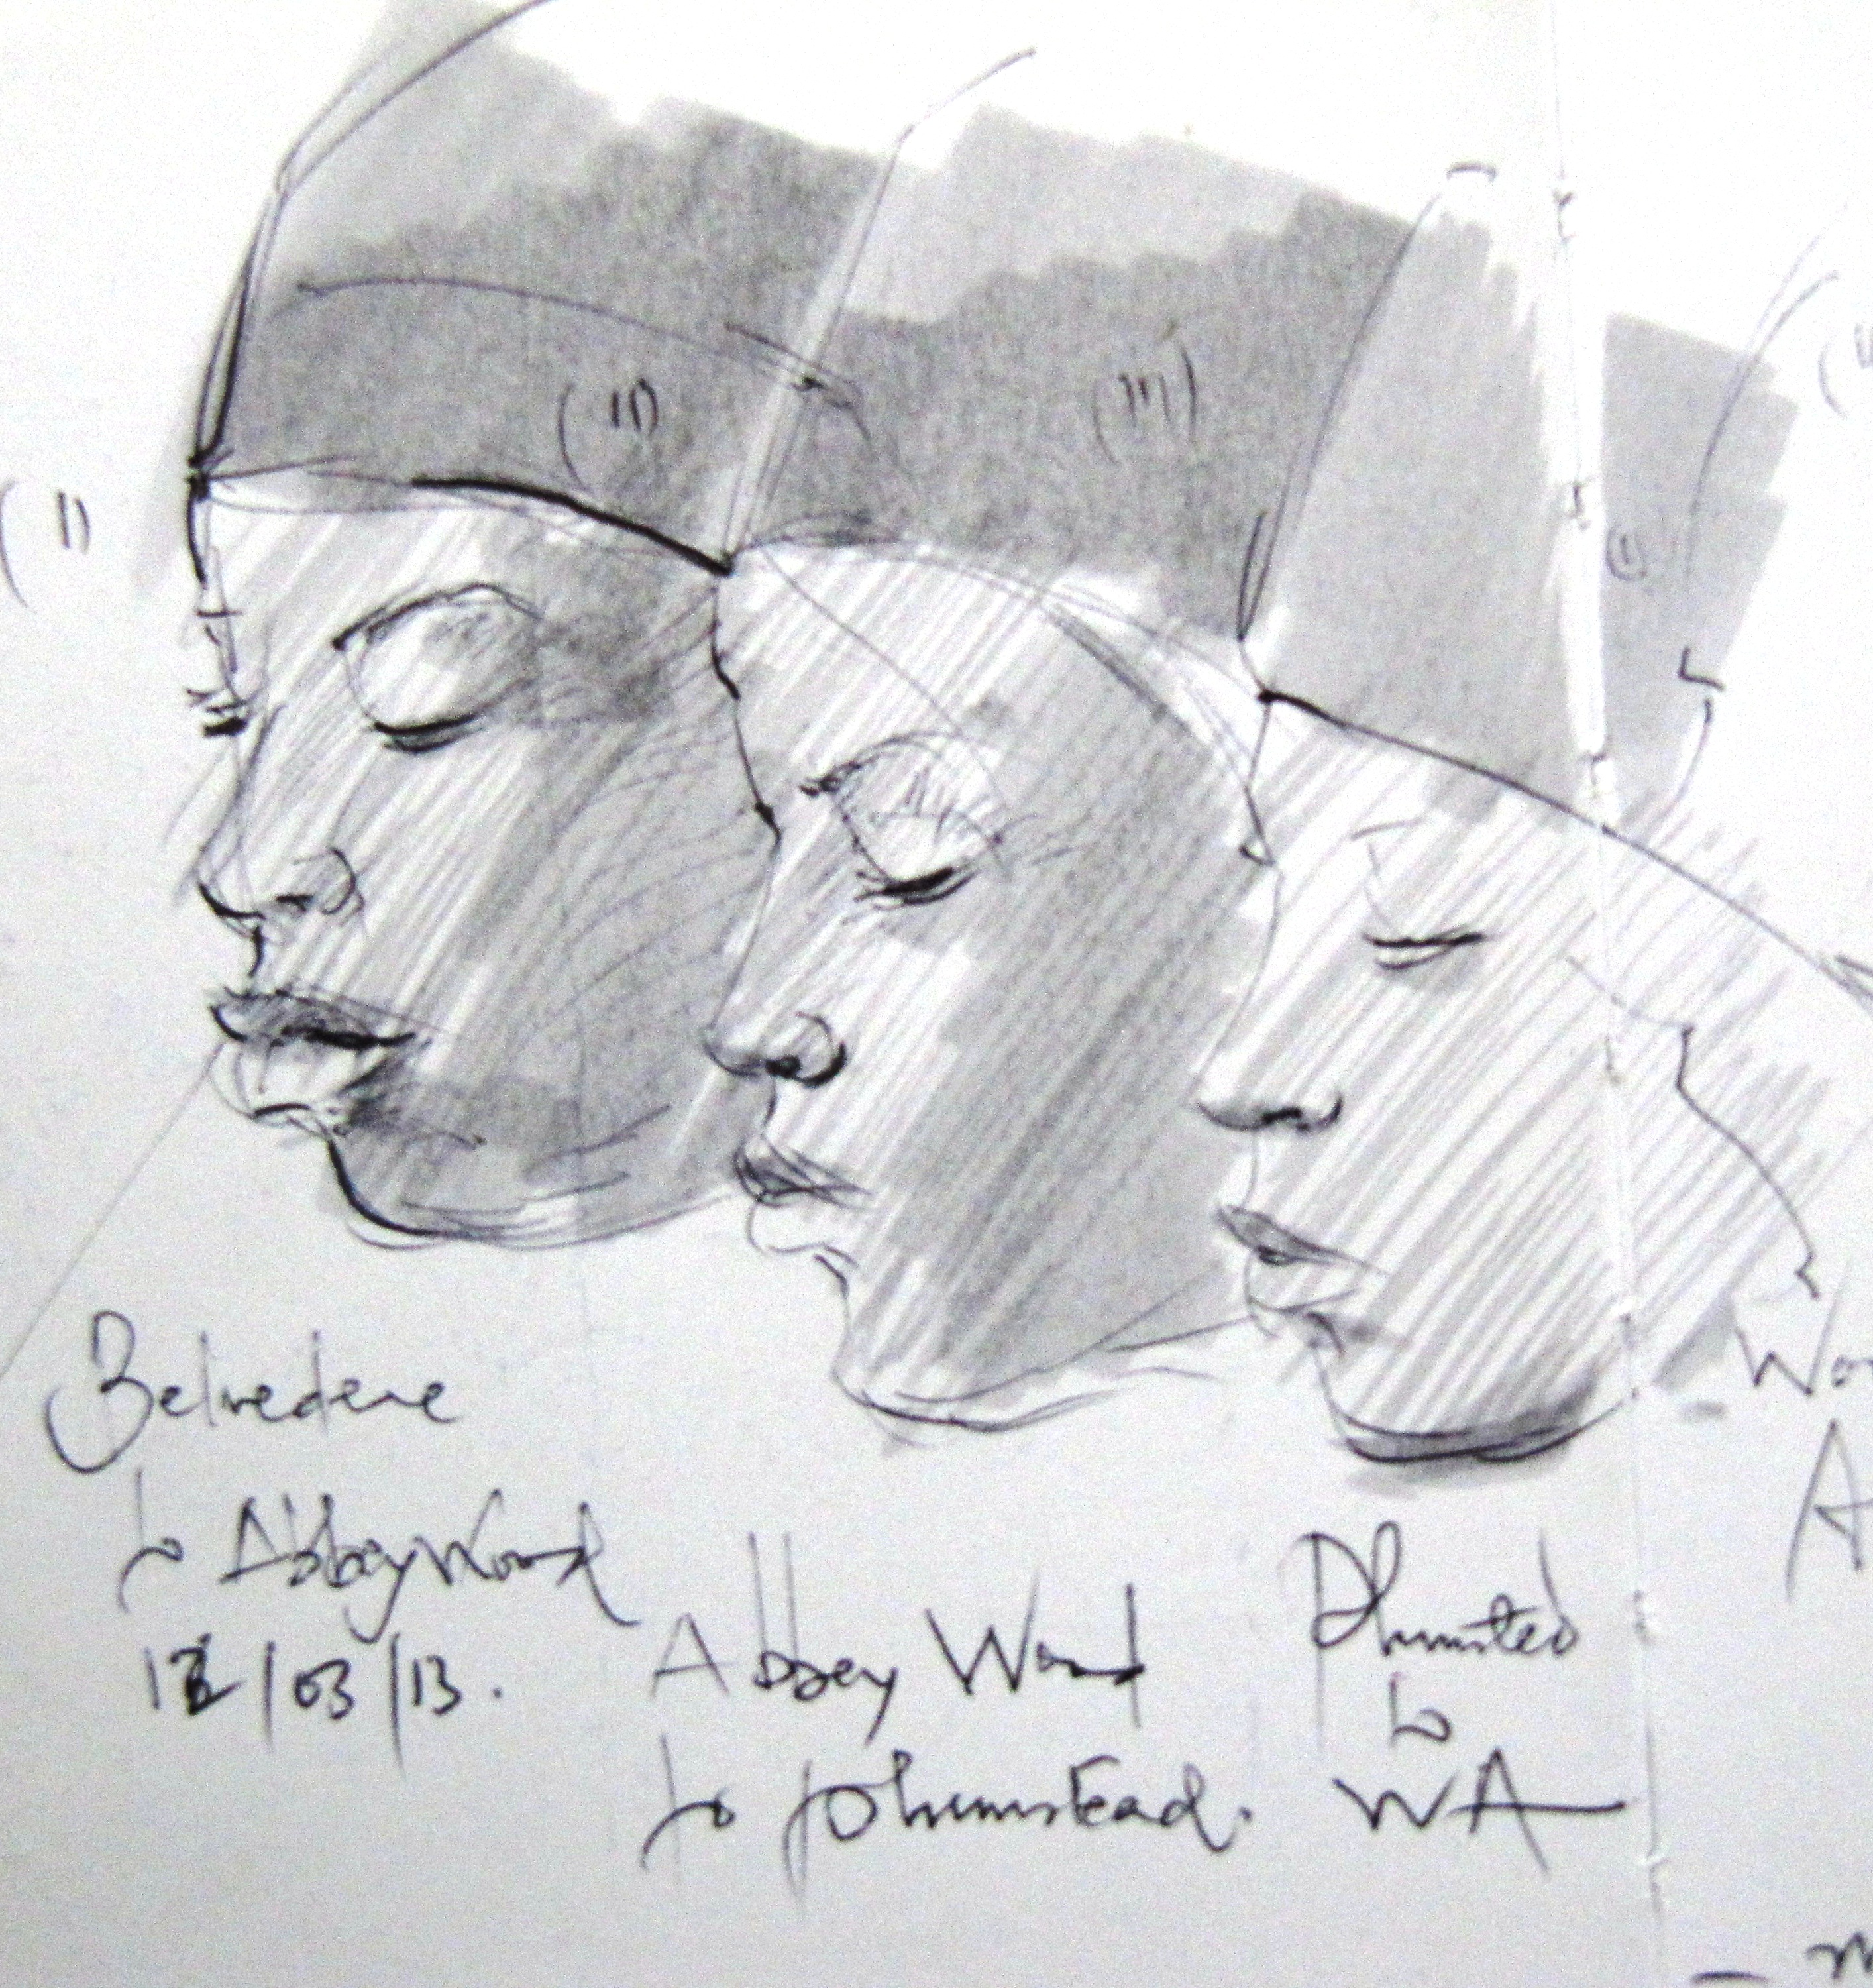 3 sketches of lady in profile